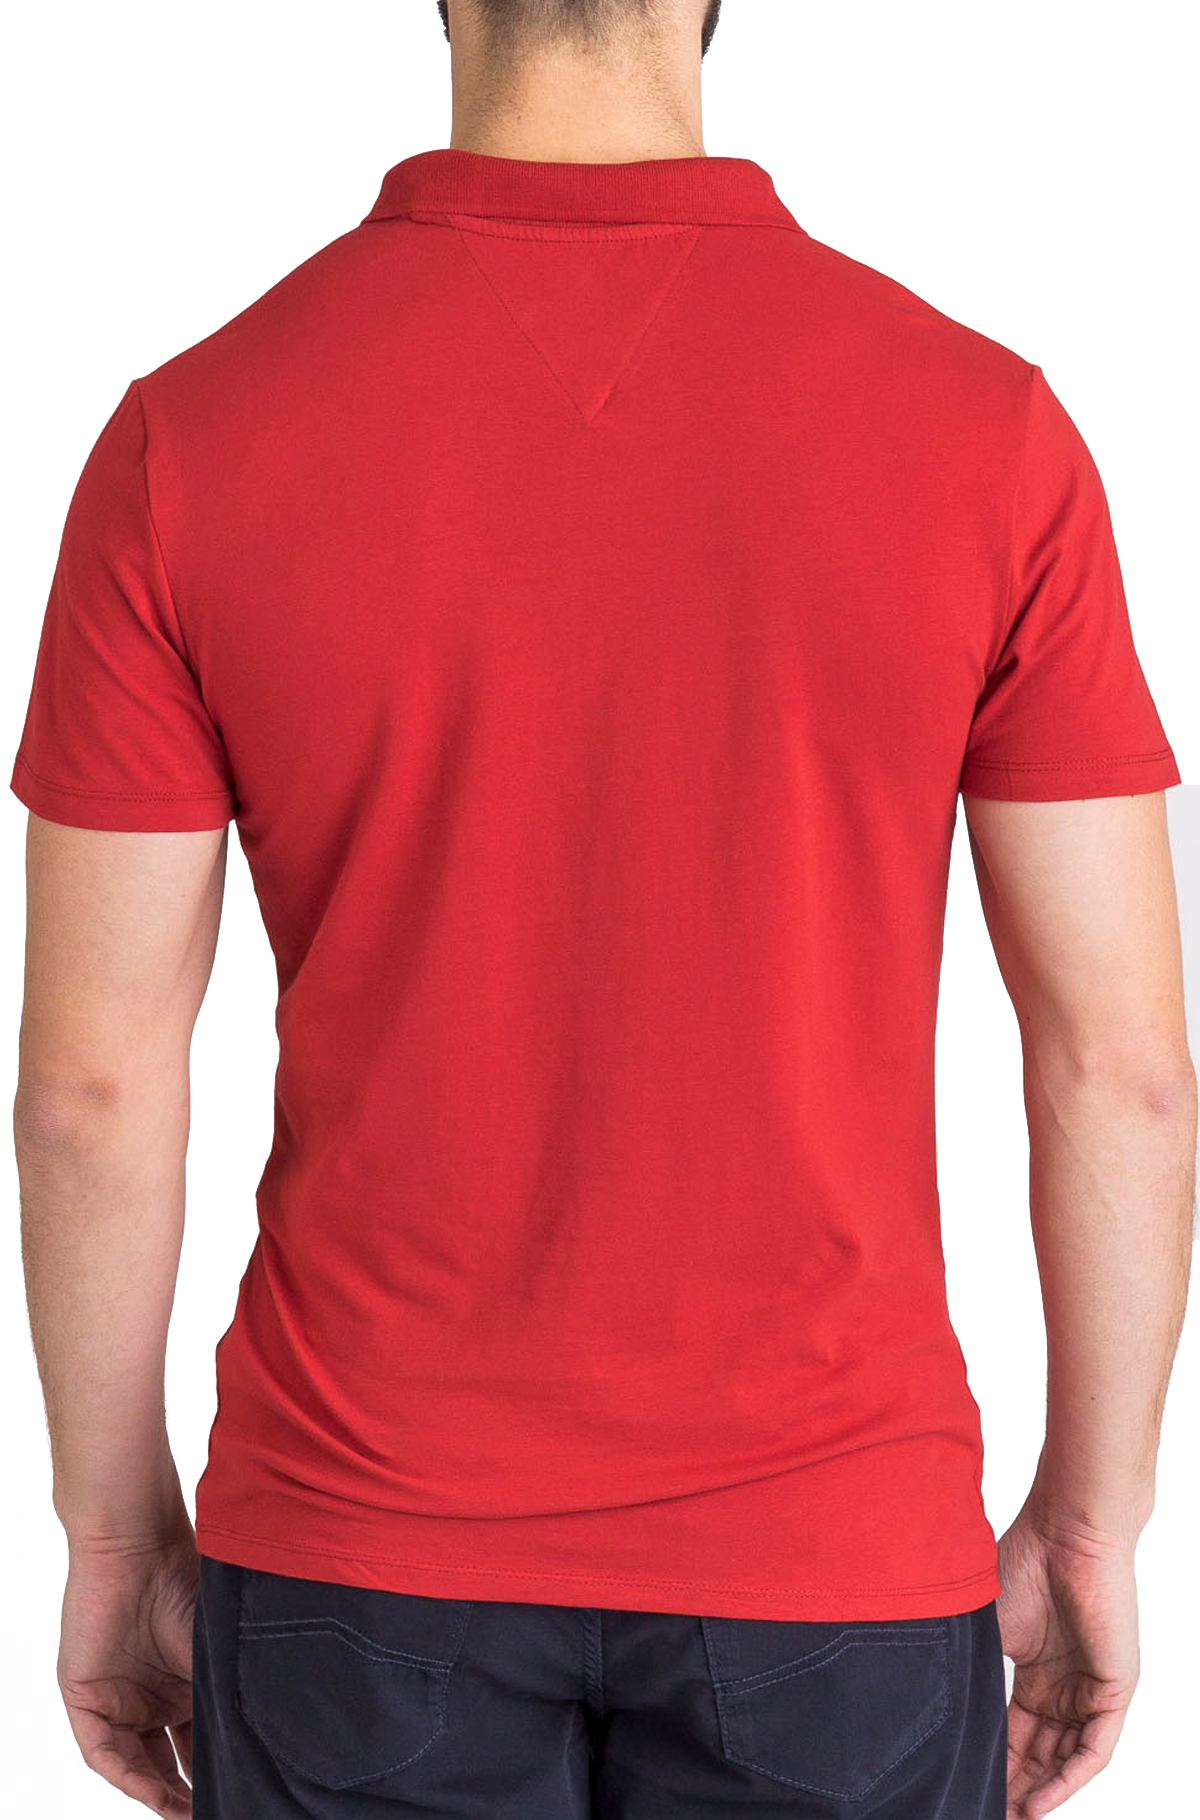 GUESS JEANS POLO MANCHES COURTES M92P18 ROUGE HOMME